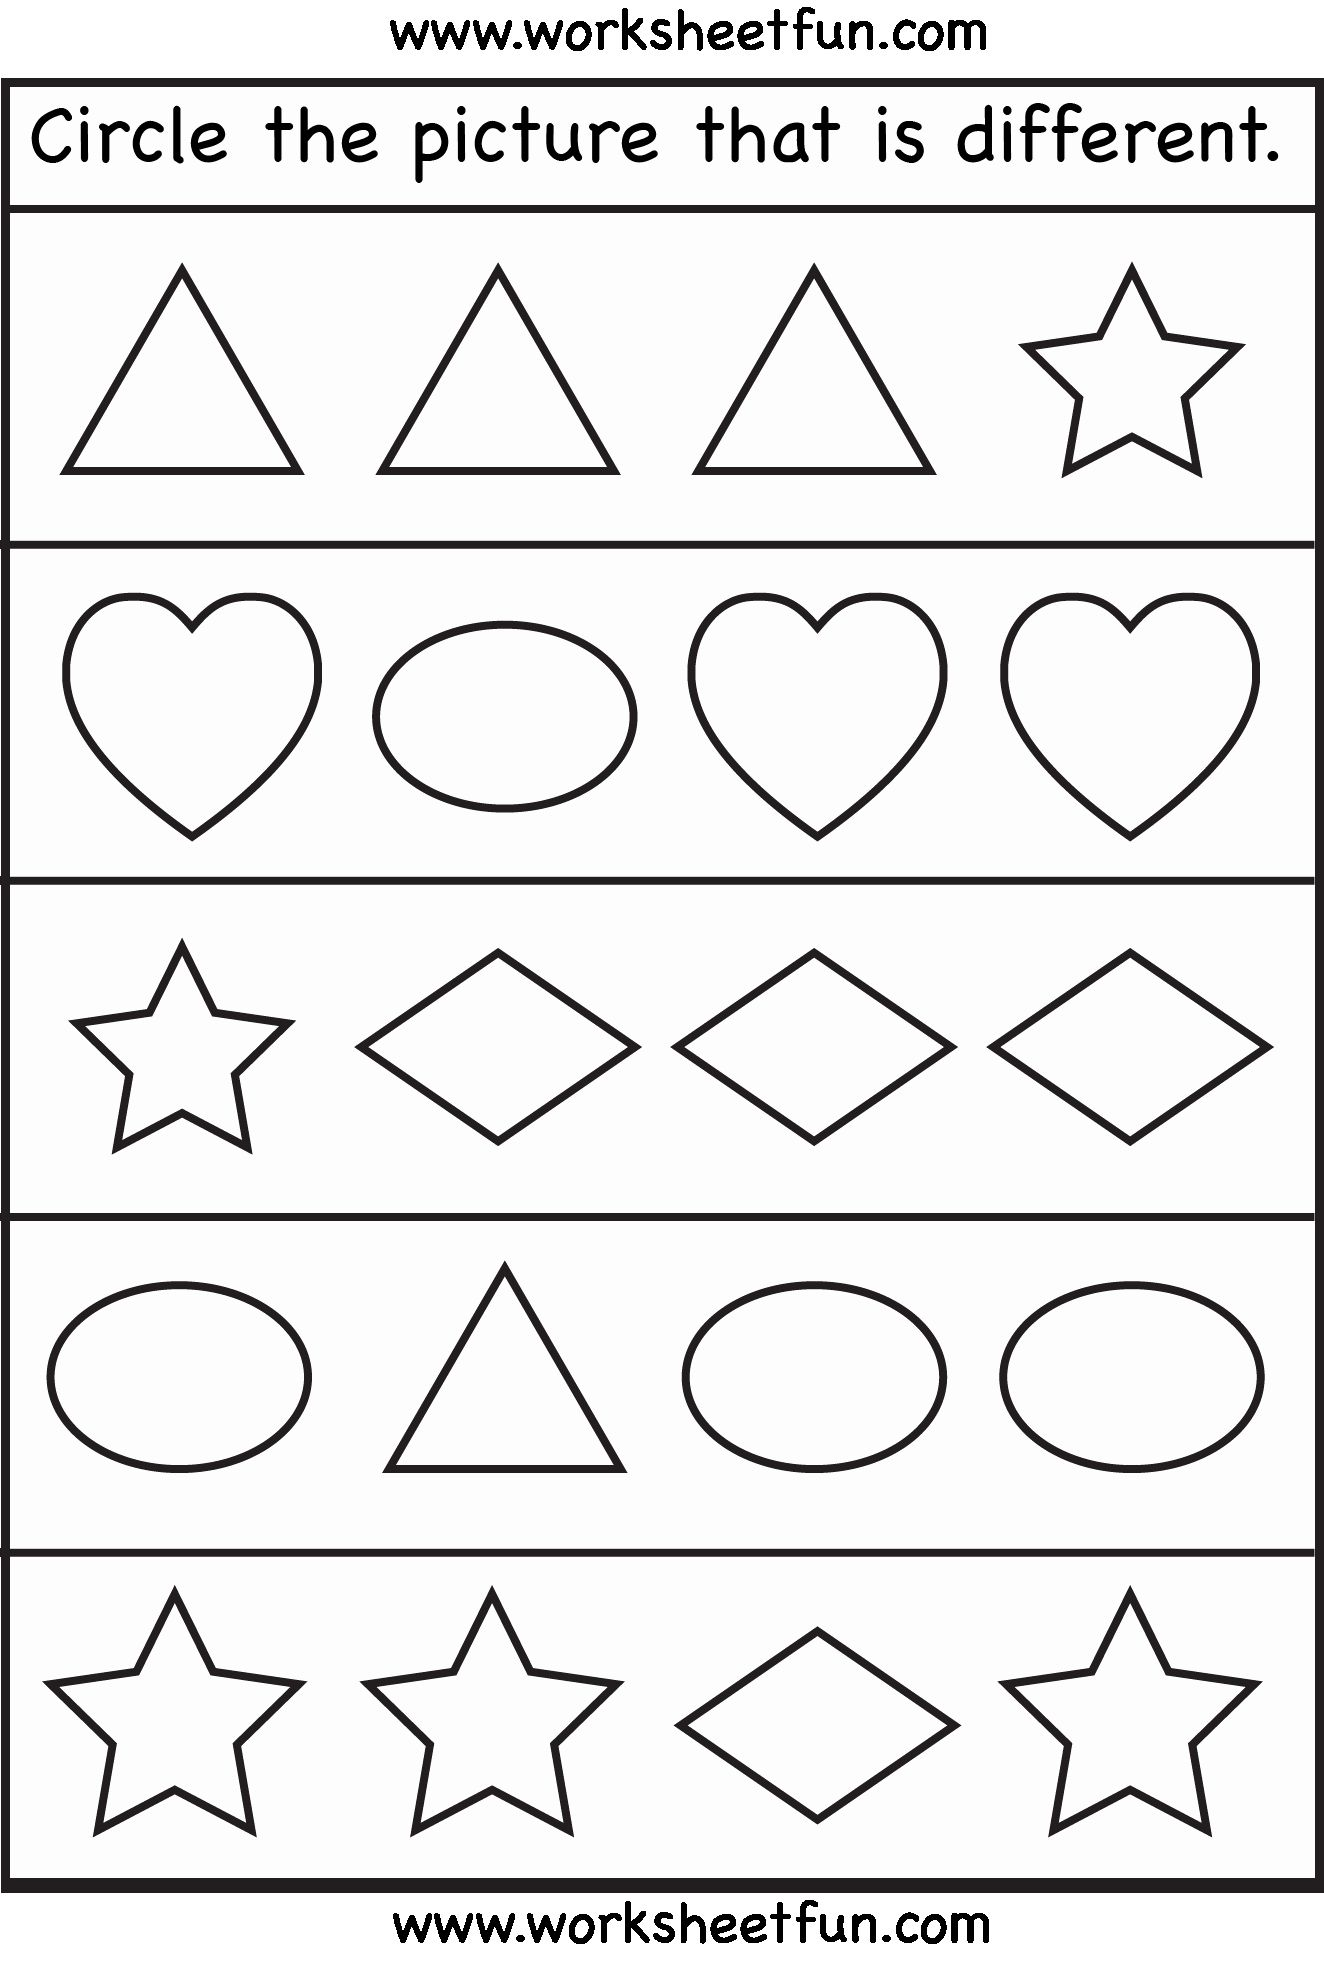 Free Preschool Worksheets In